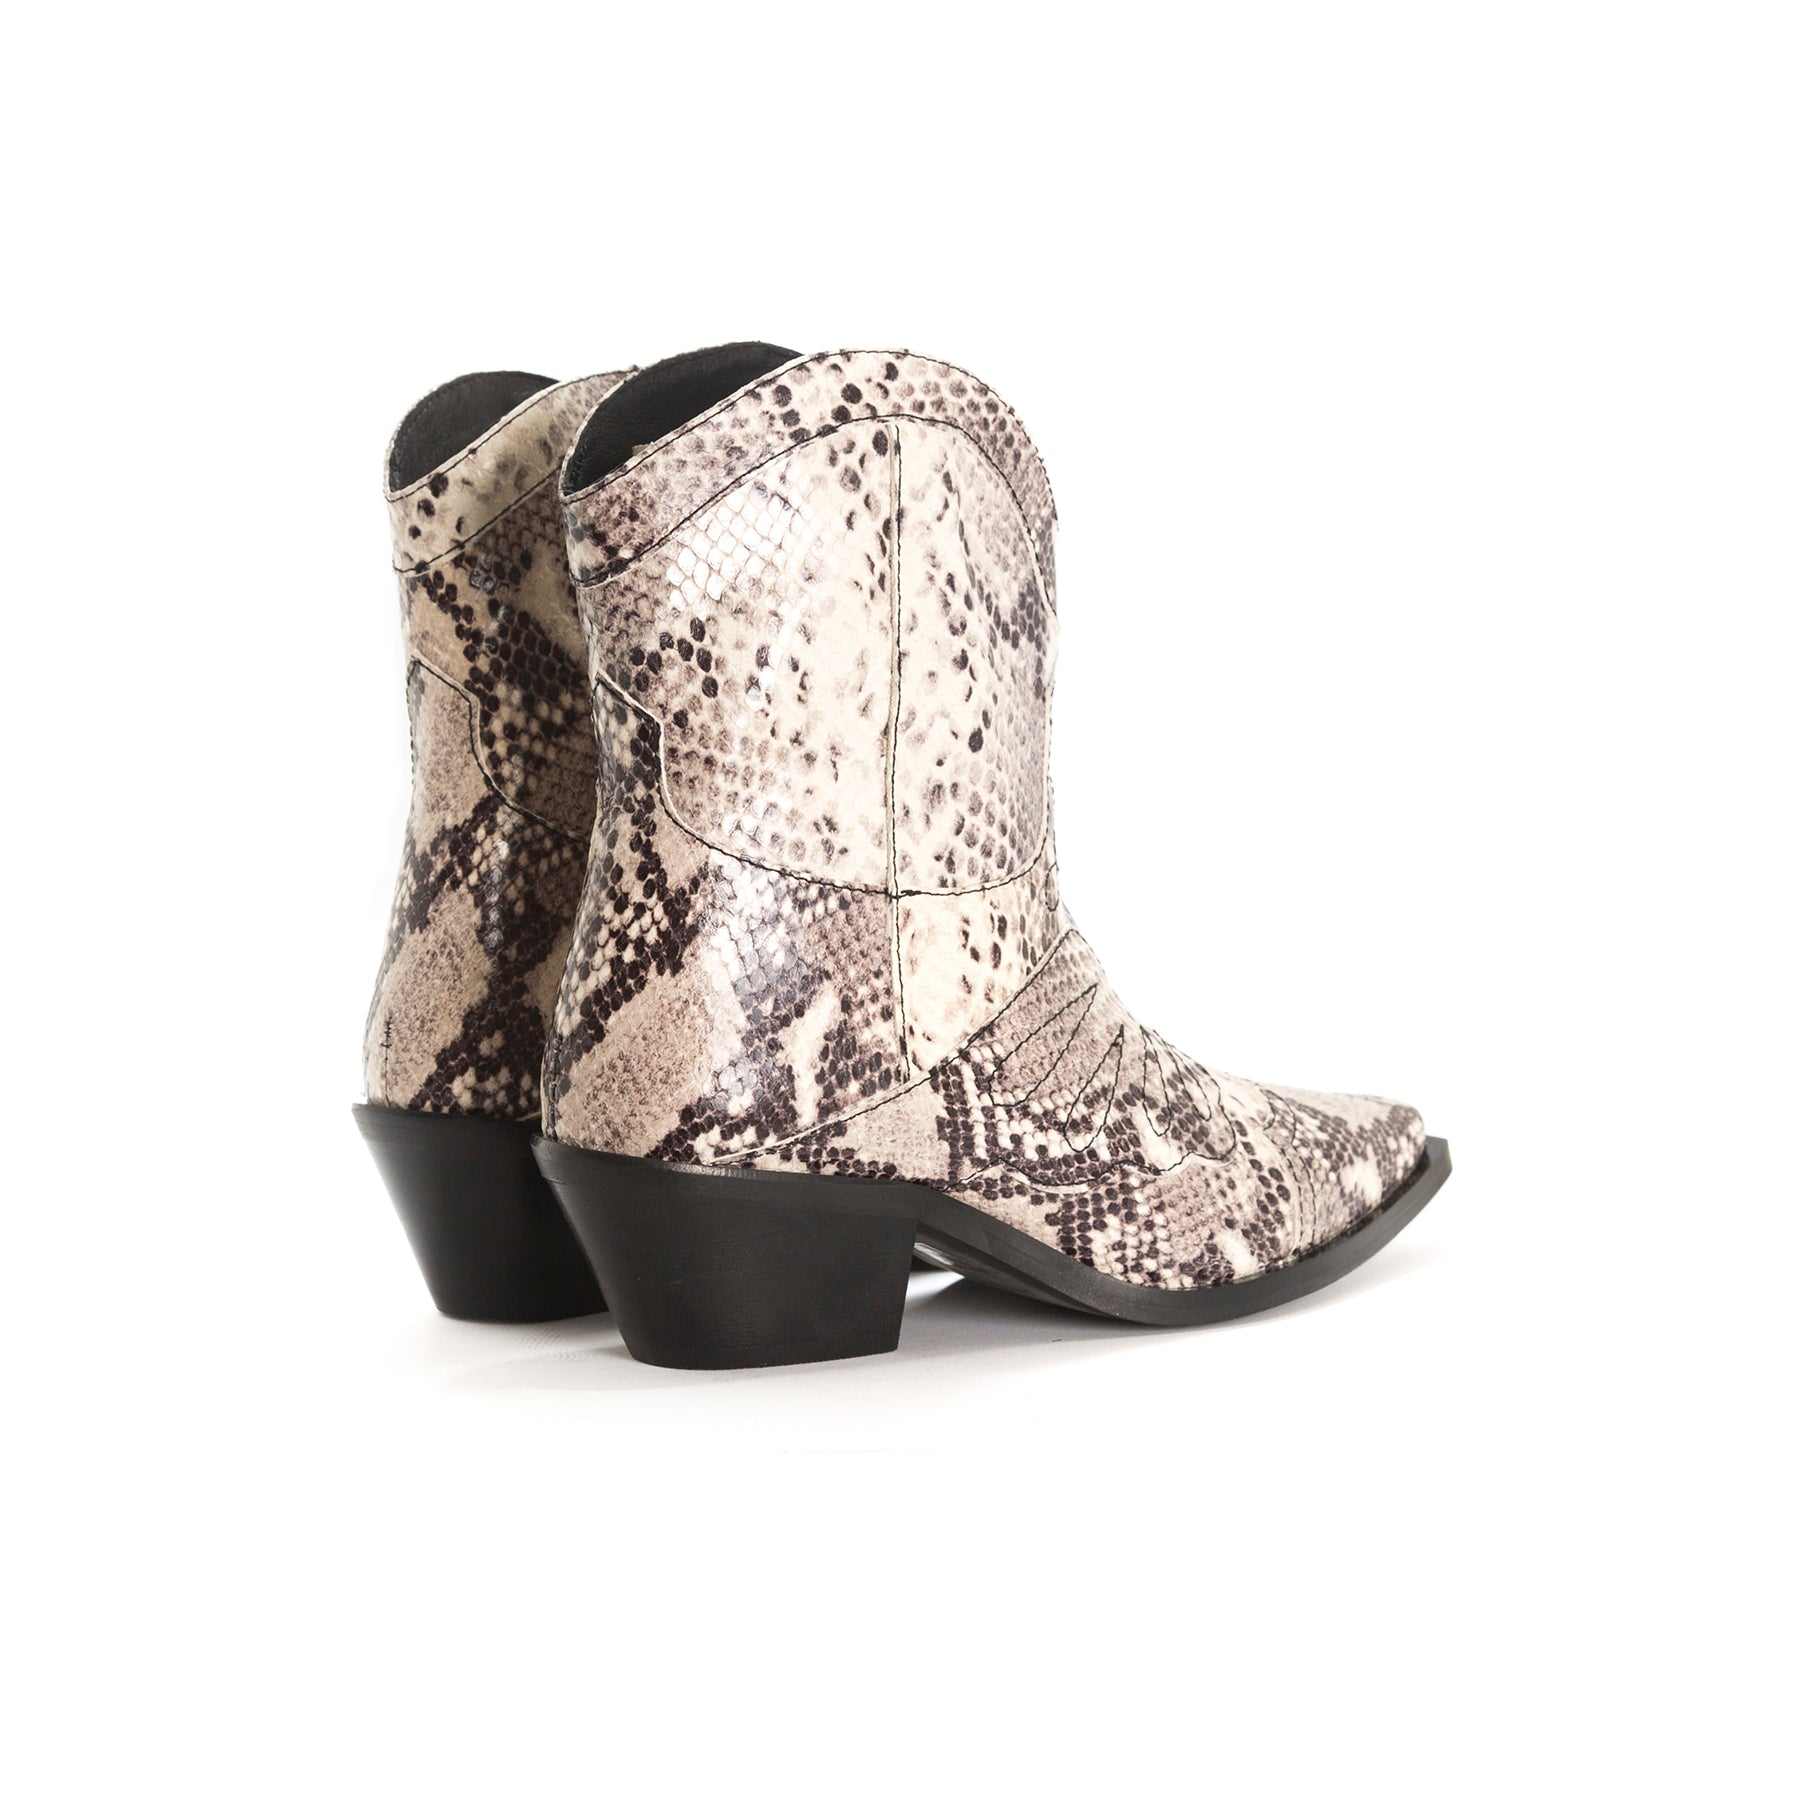 Maryland Nude Snake Leather Ankle Boots